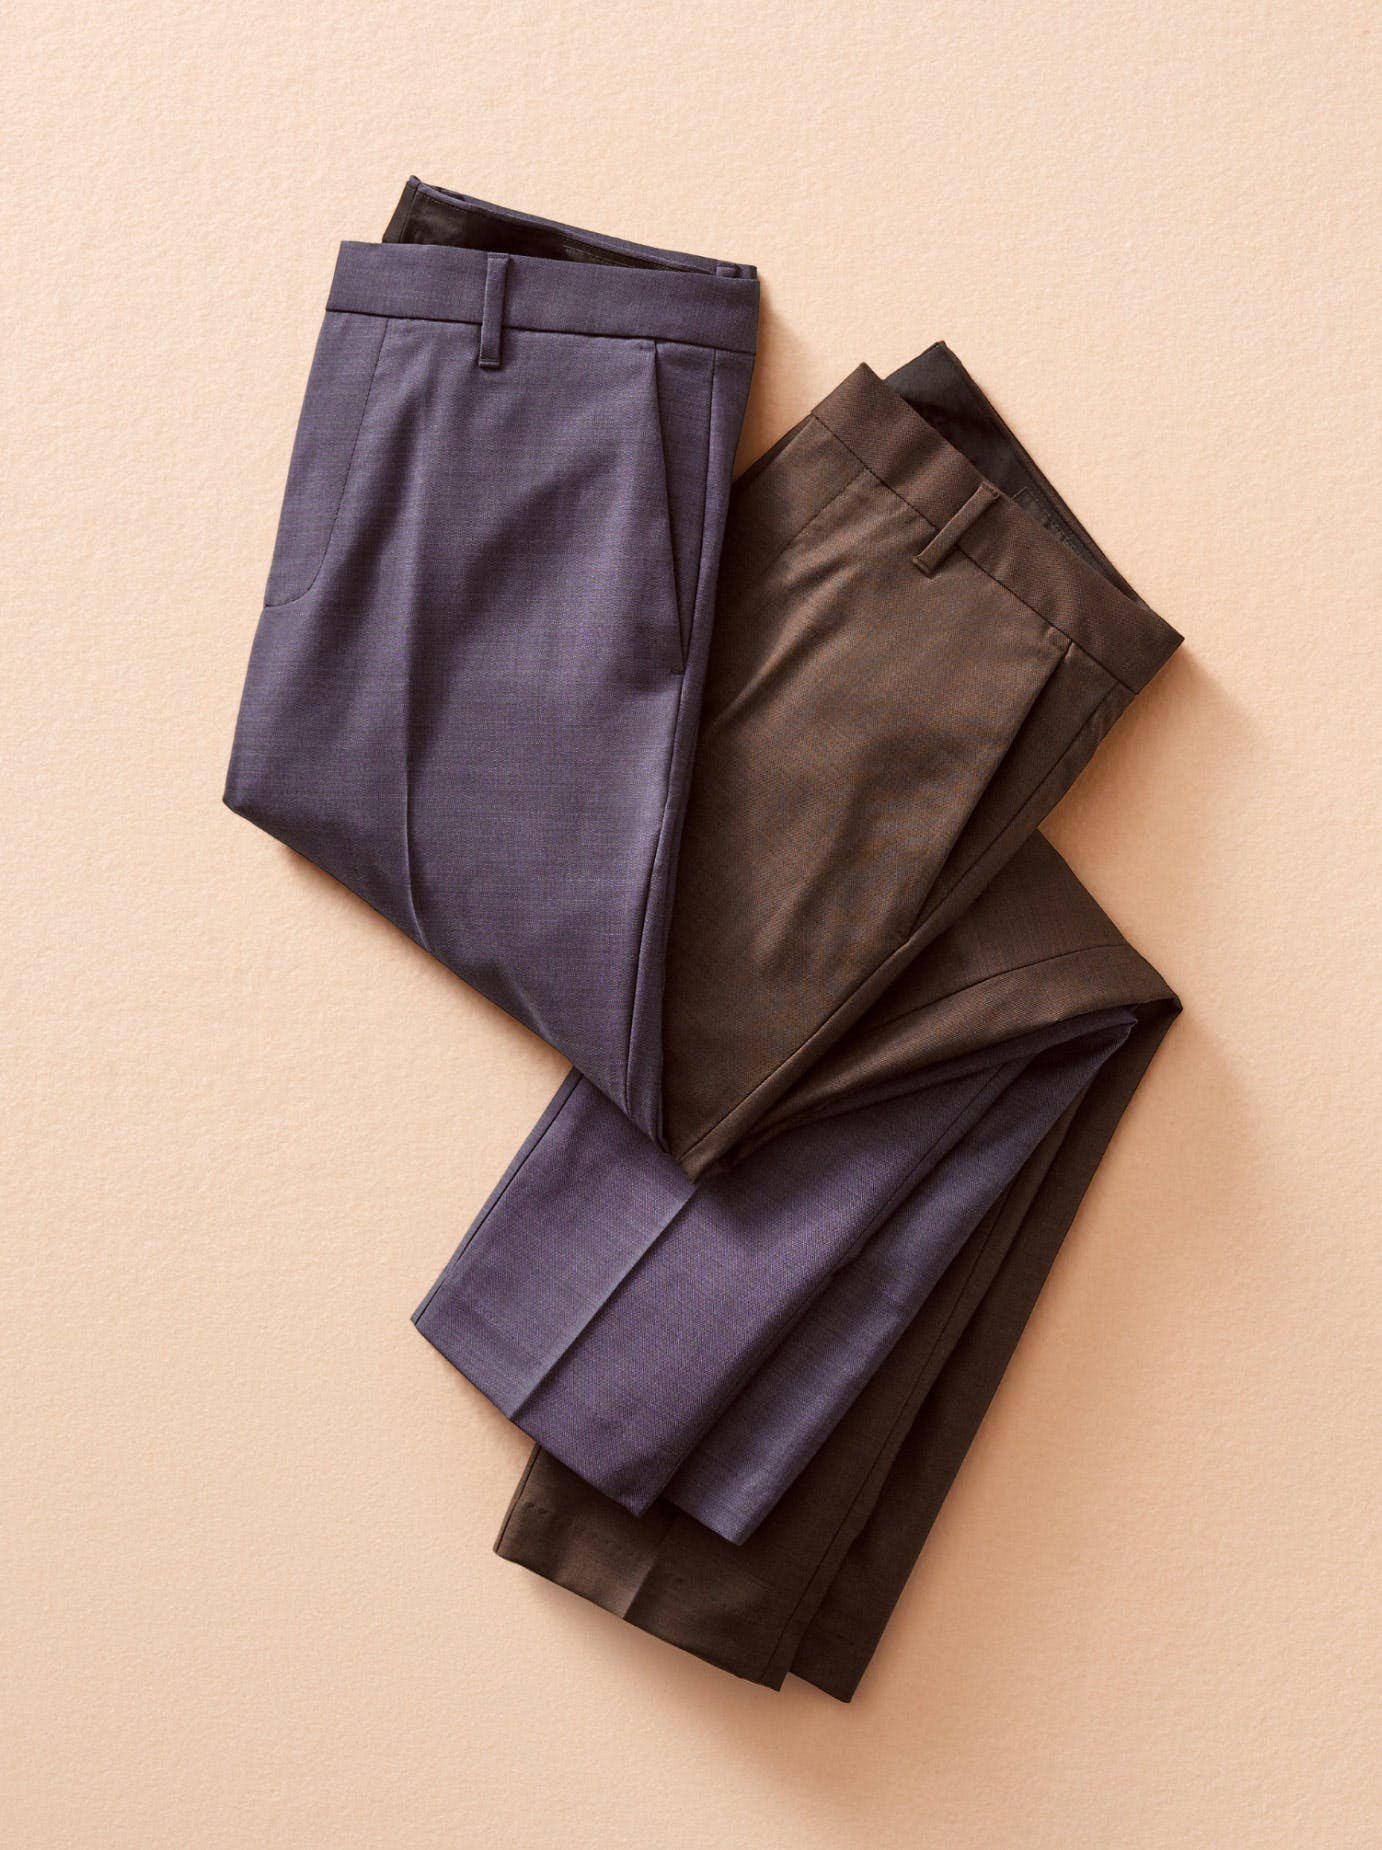 Image of two stretch weekday warrior pants